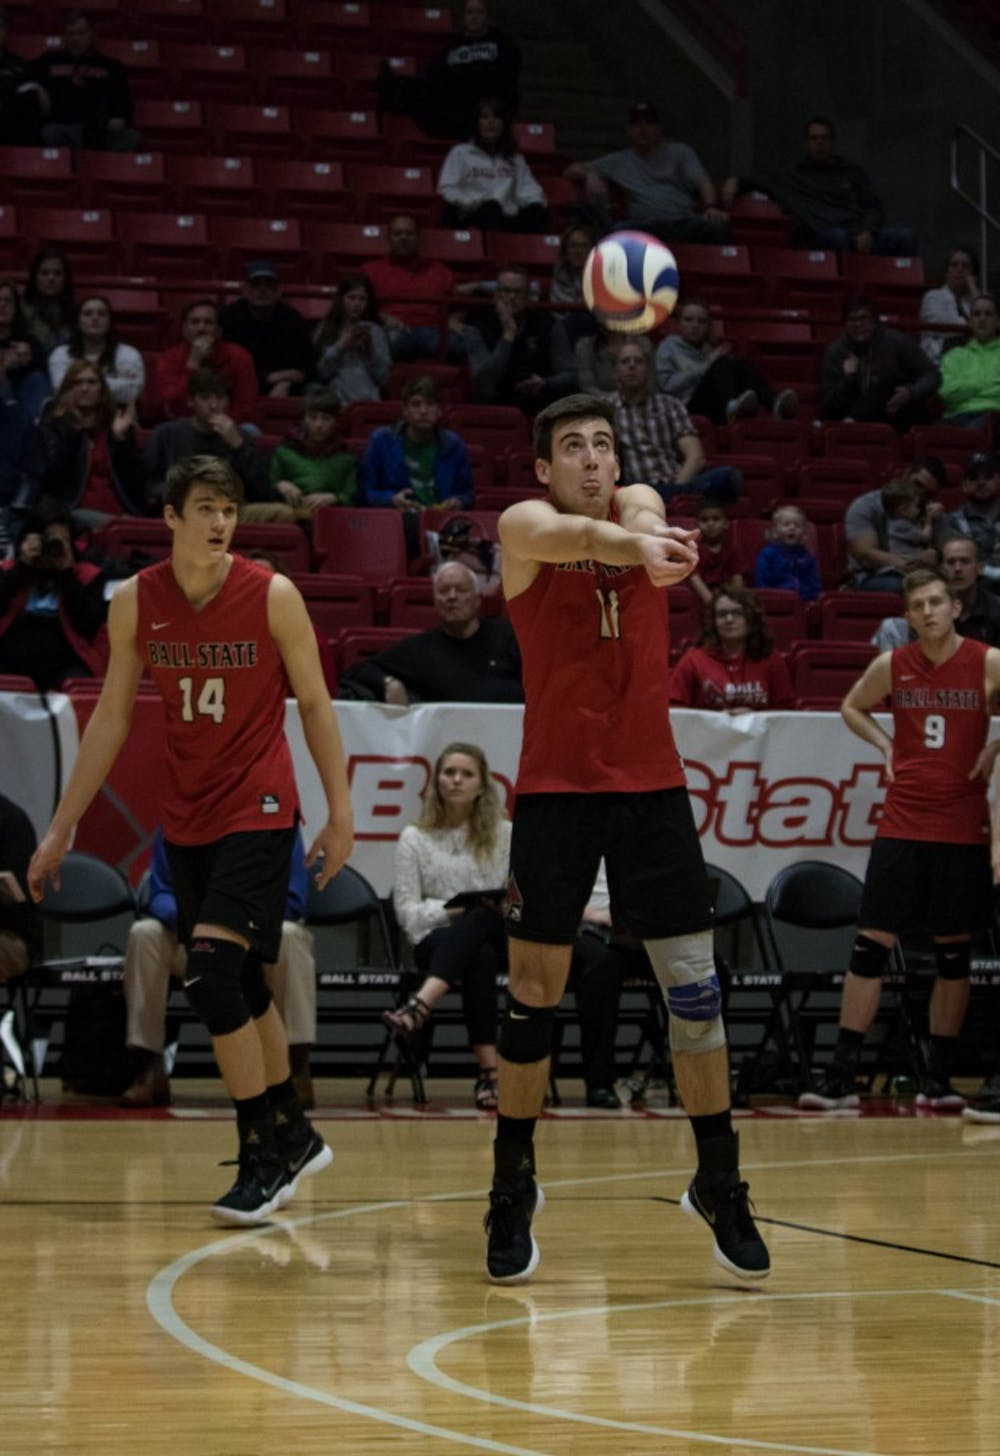 <p>Senior Mitch Weiler bumps the ball during the first game against Lindenwood on March 30 at John E. Worthen Arena. Weiler had 13 digs during the game. <strong>Rebecca Slezak, DN</strong></p>